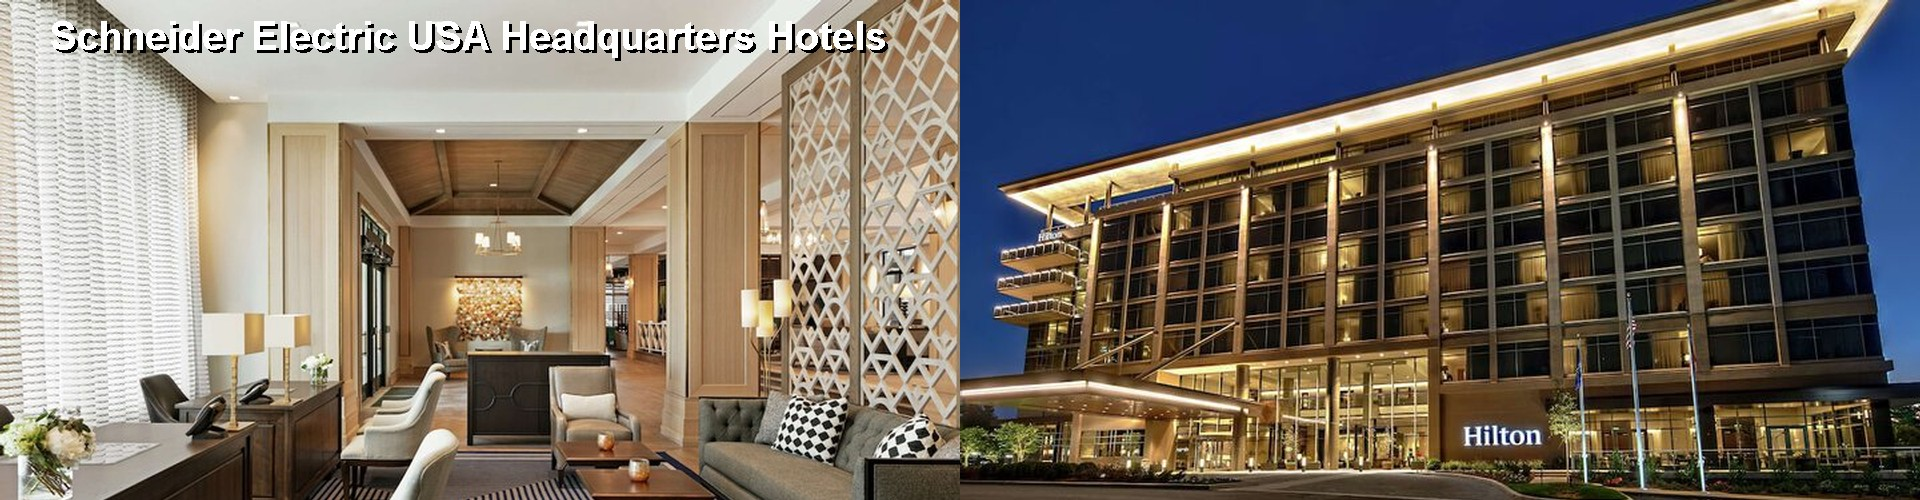 5 Best Hotels near Schneider Electric USA Headquarters